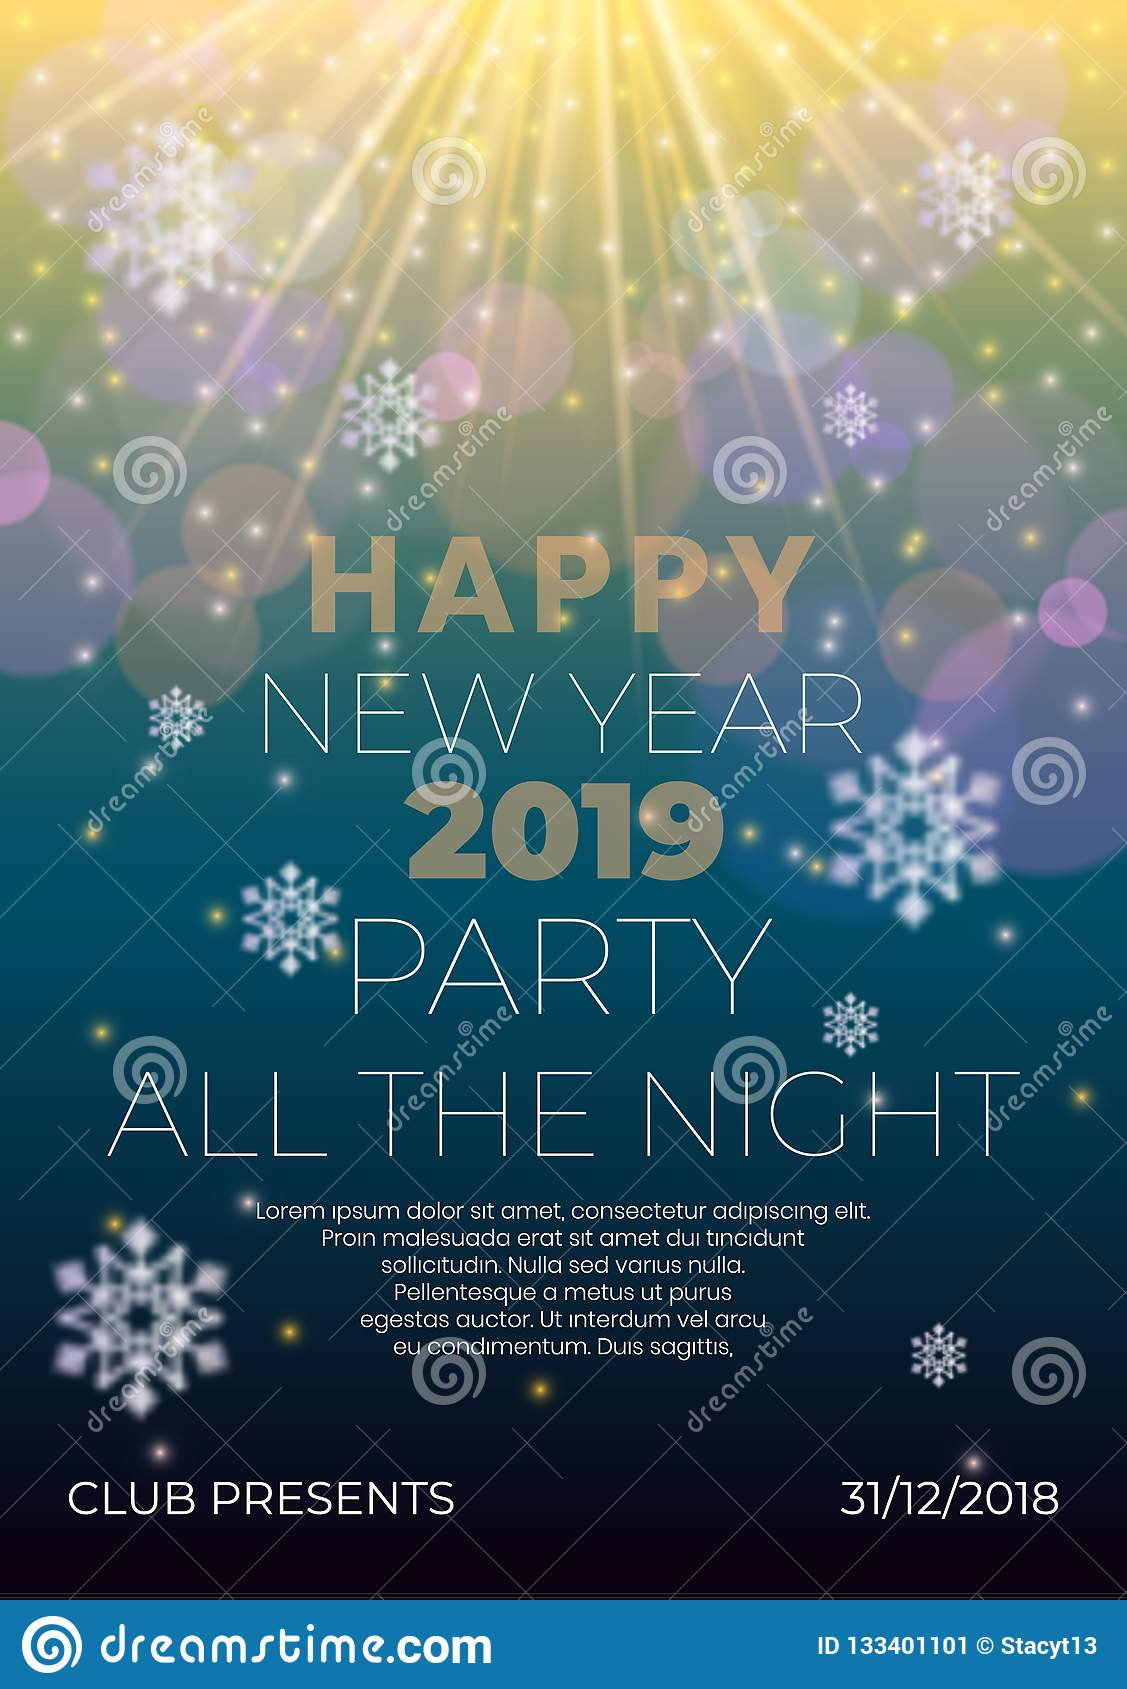 Happy New Year Night Flyer Banner Concept With Glowing Stars,light